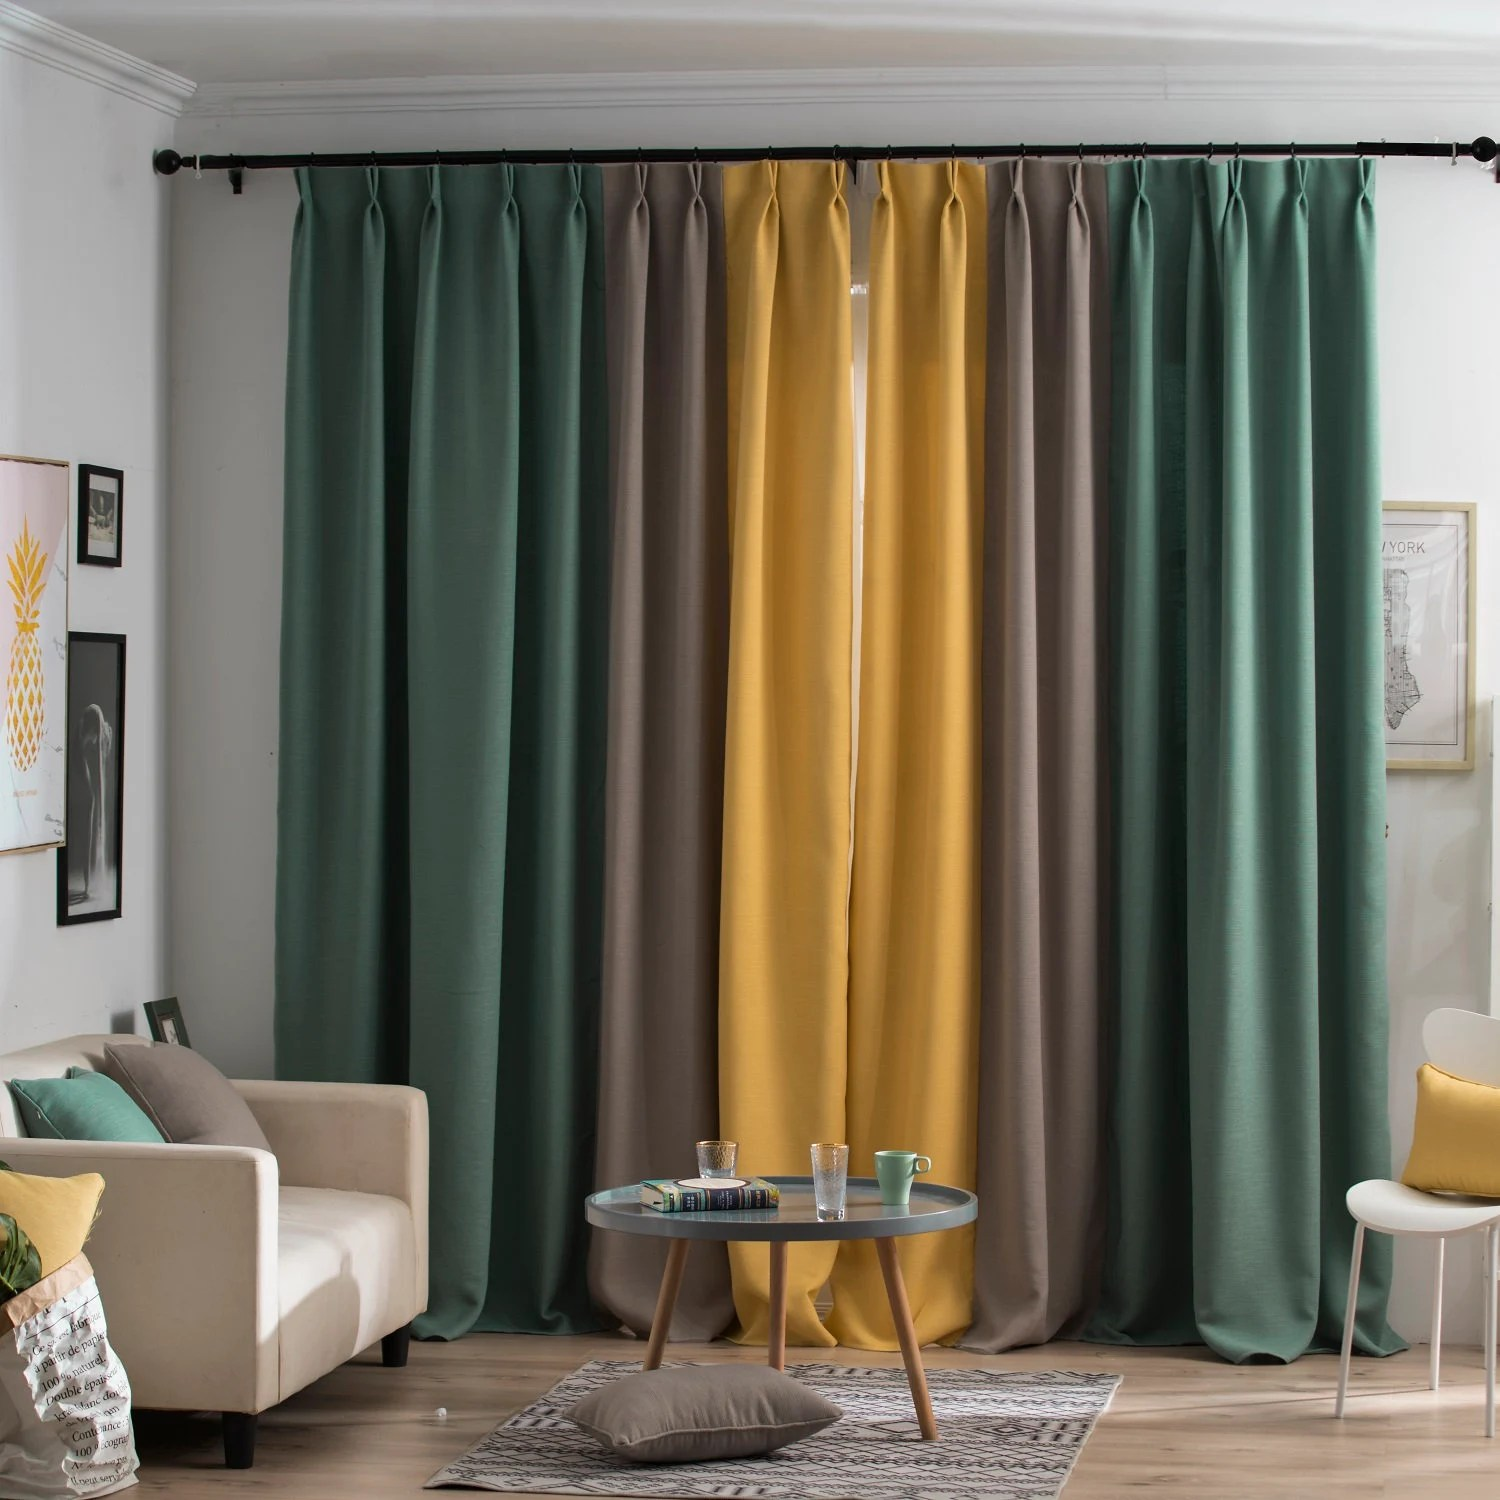 Privacy Curtain For Bedroom Custom Drape Curtain Panel Elegant Living Room Drapery Bedroom Window Drape Privacy Curtain Blackout Yellow Gray And Green Color Block